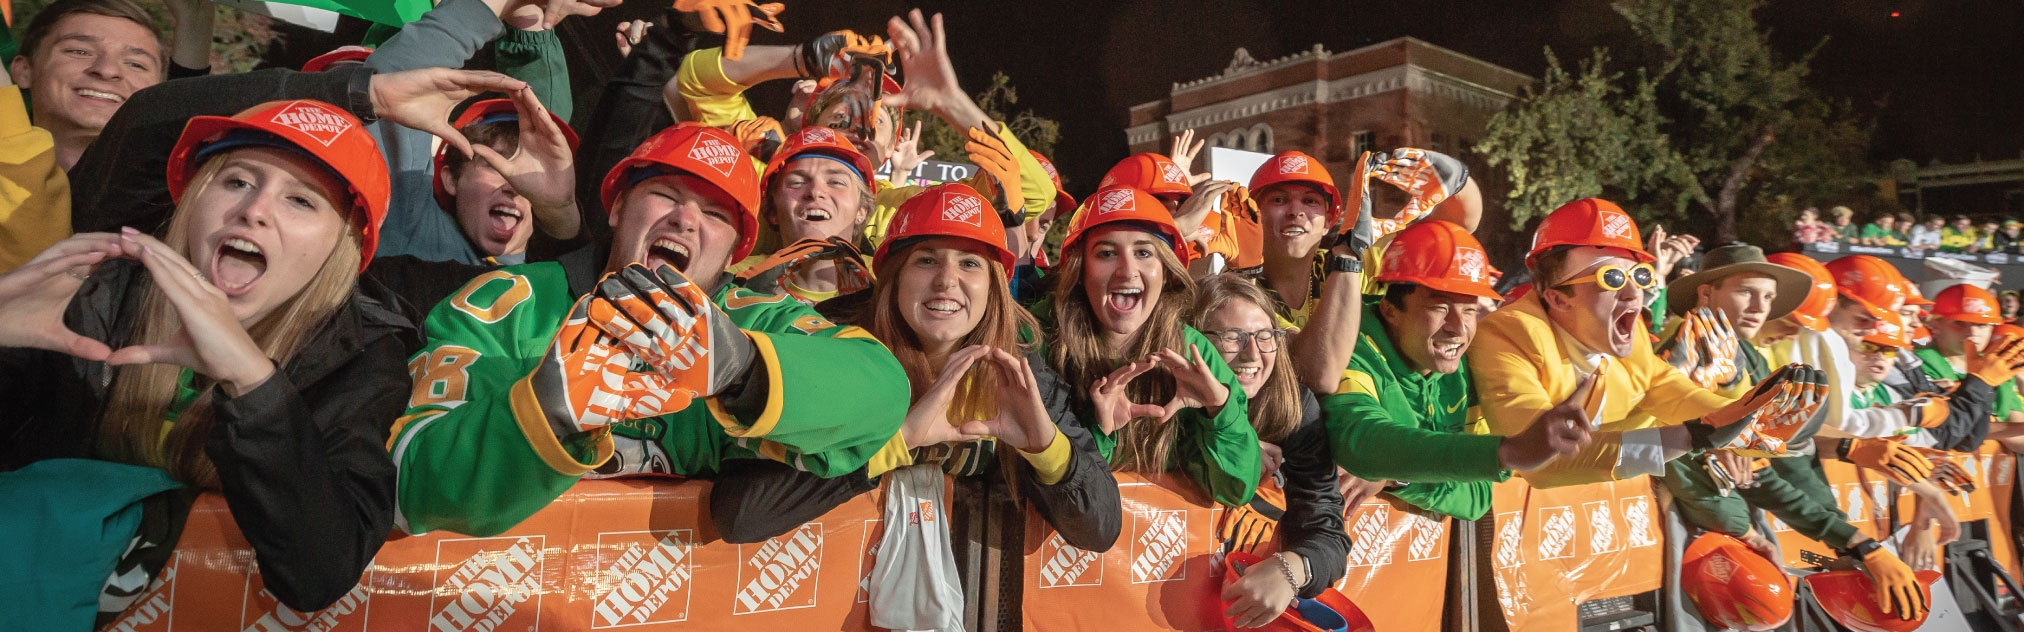 A crowd of students throw the O during College GameDay